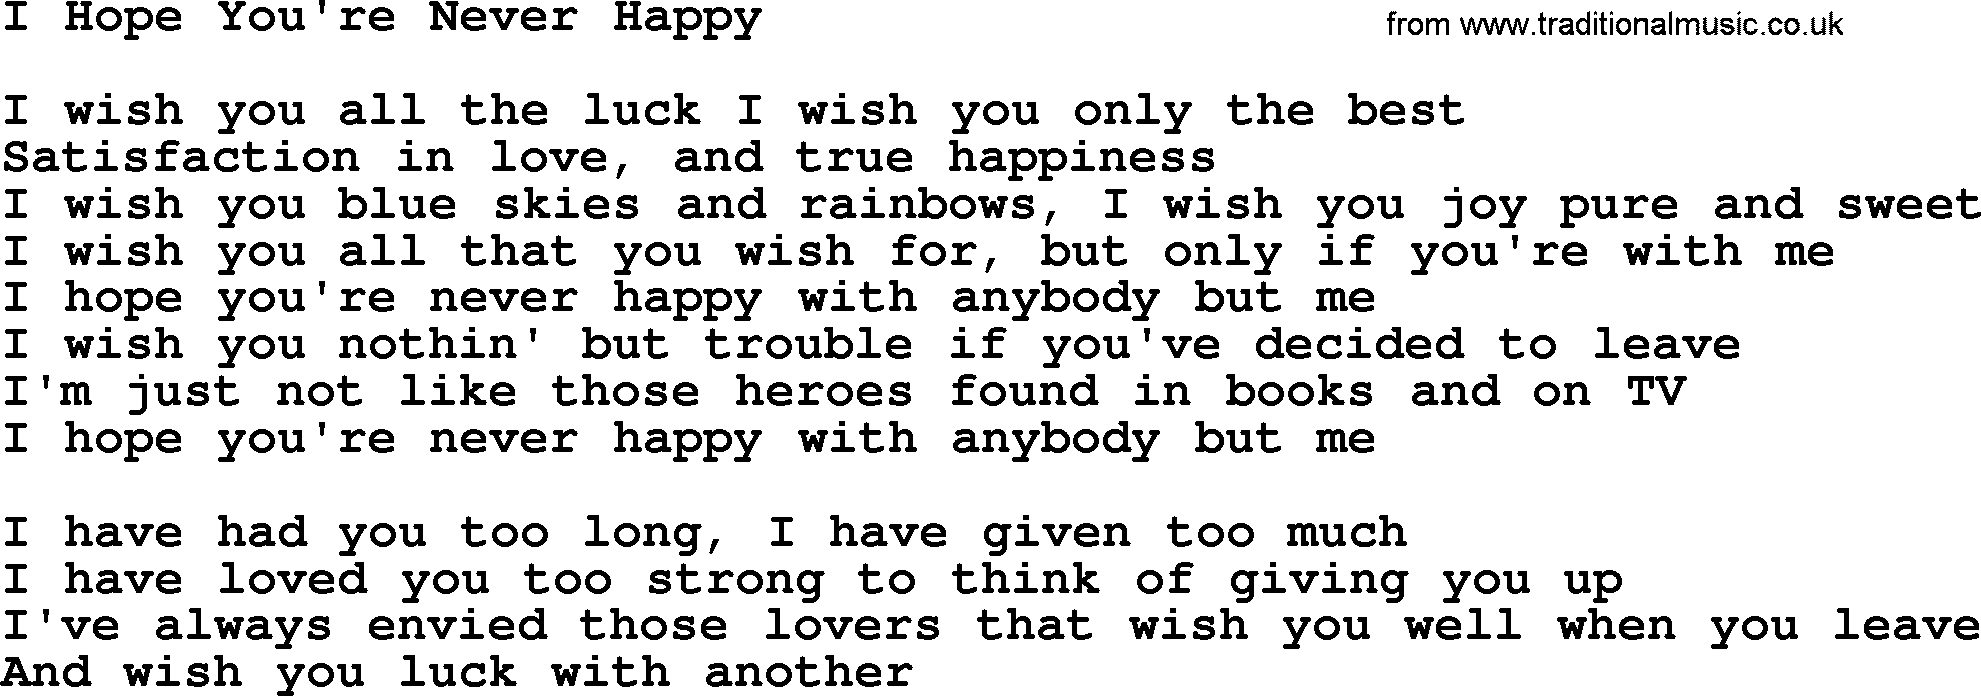 Dolly Parton song: I Hope You're Never Happy, lyrics